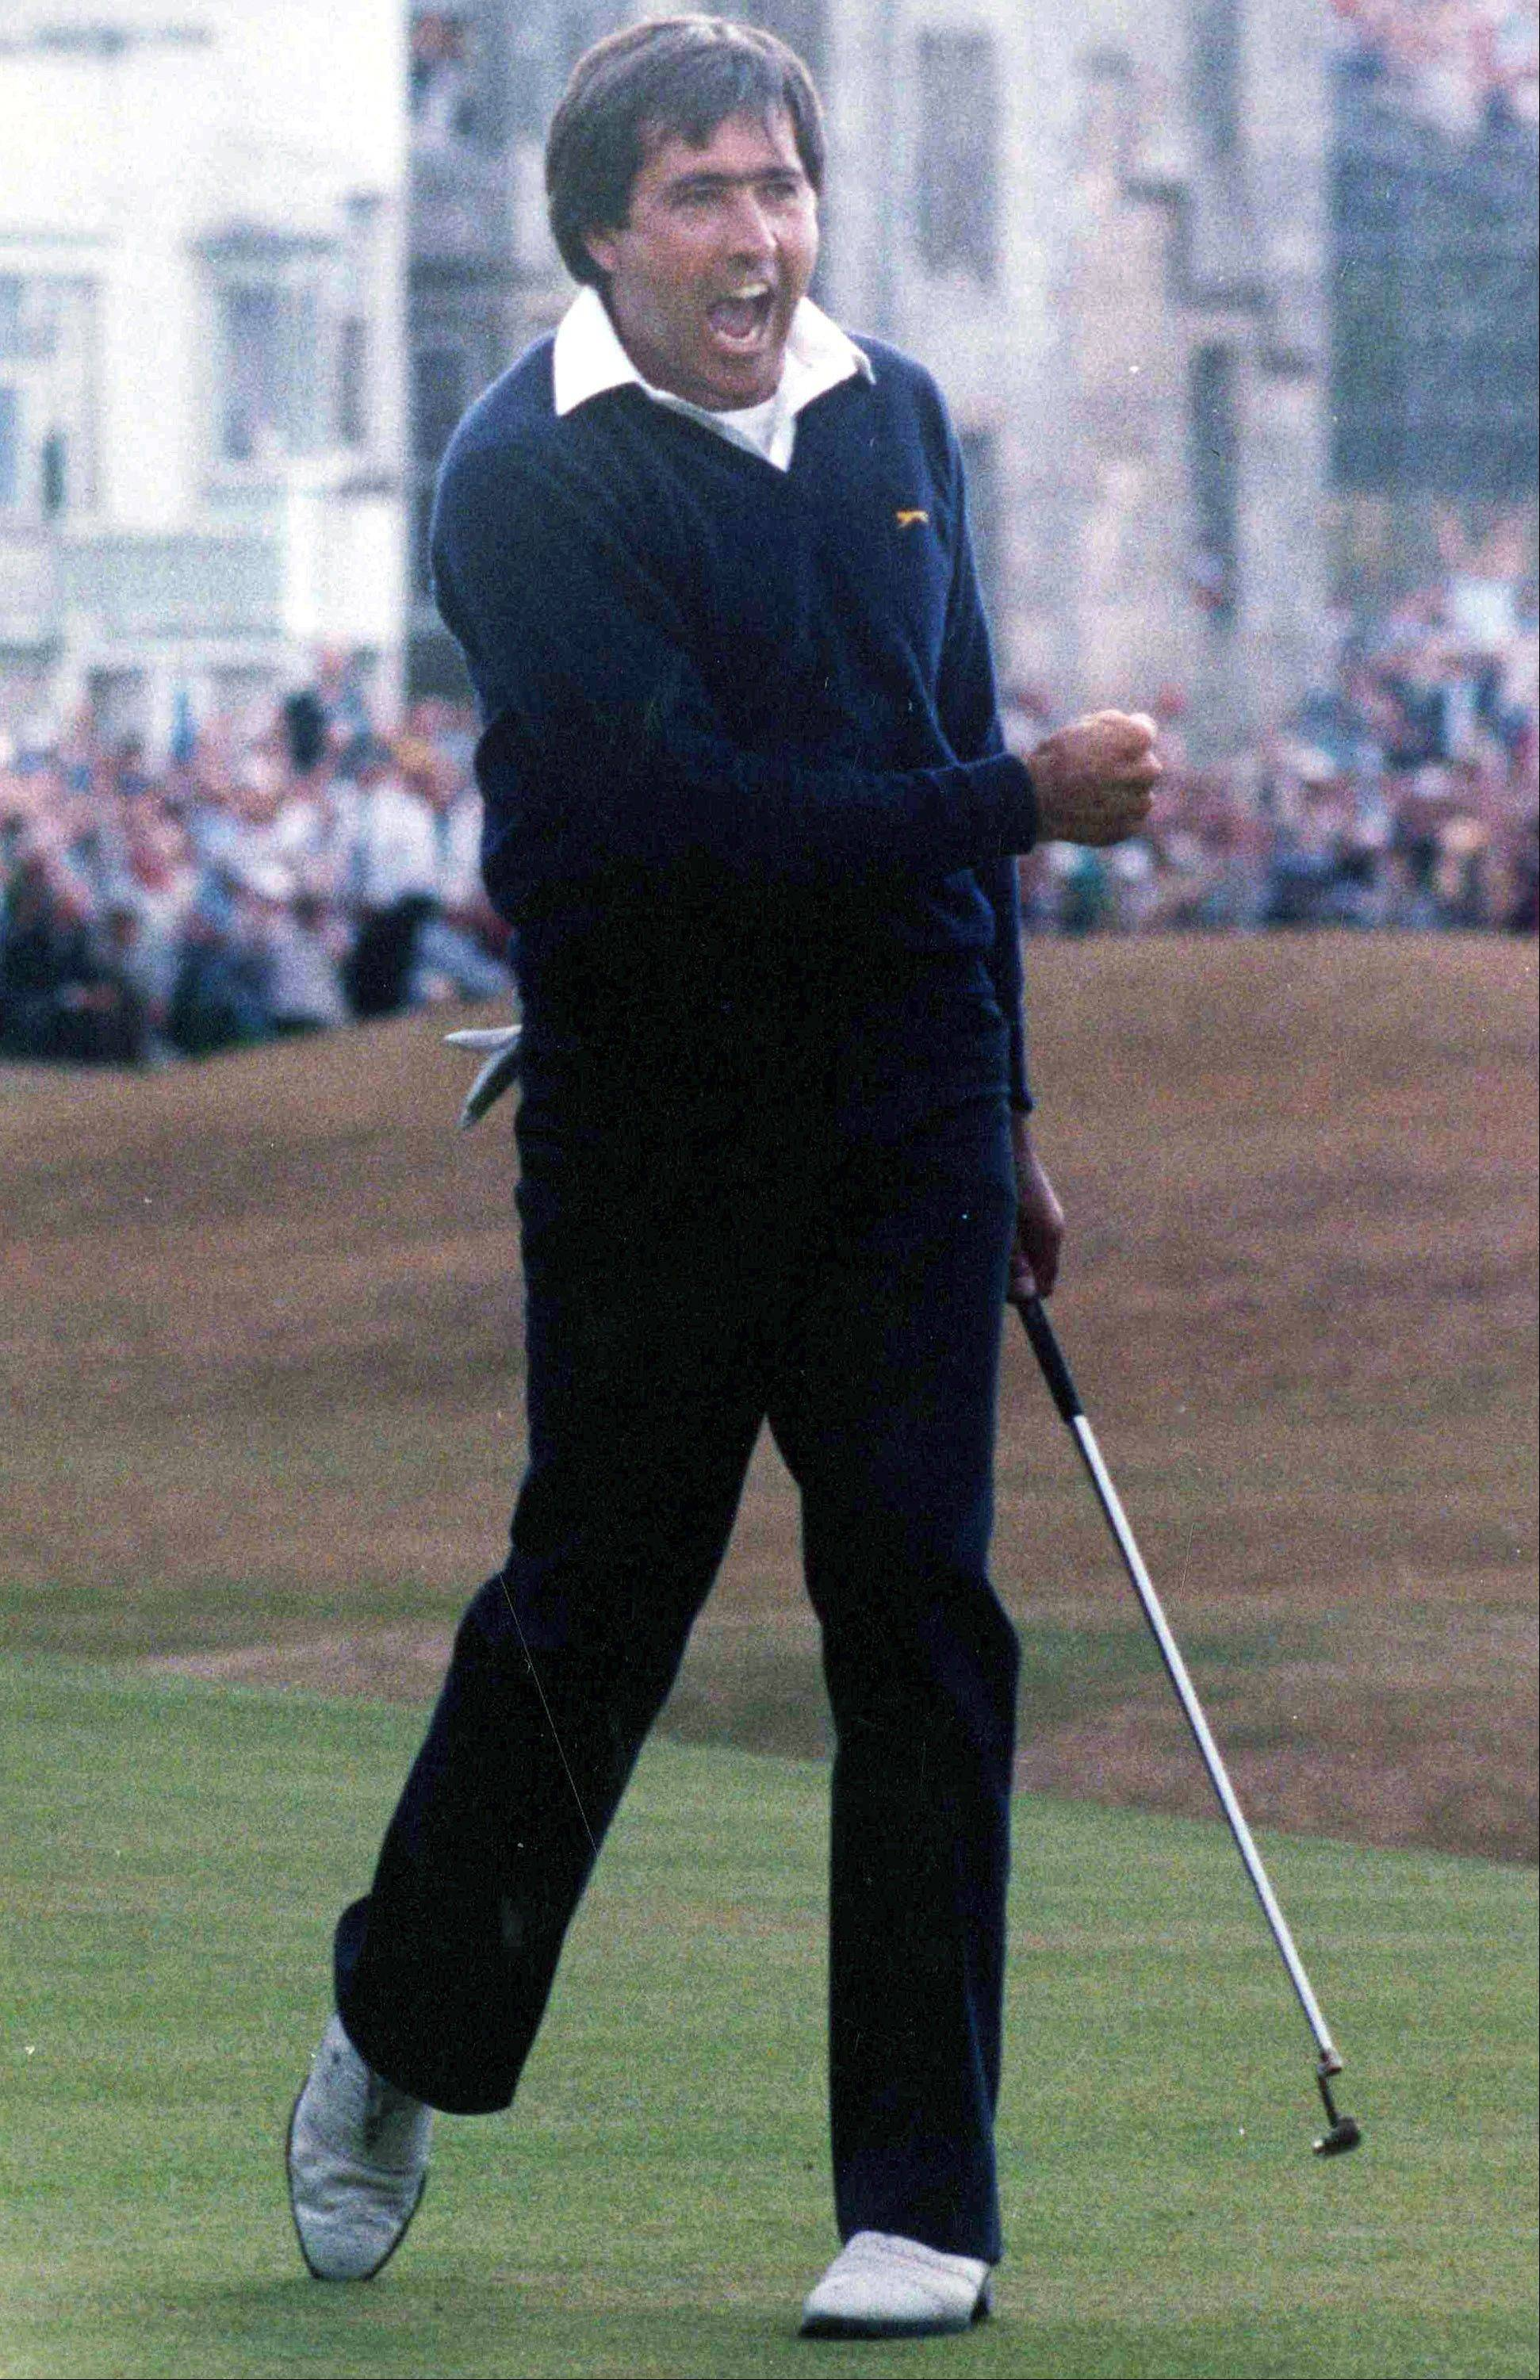 Spain's Severiano Ballesteros celebrates winning the British Open golf tournament at St. Andrews, Scotland. Longtime friend Jose Maria Olazabal revealed on Tuesday that Europe is honoring the memory of Seve Ballesteros by putting his iconic image on its golf bags. The bags have a silhouette that depicts Ballesteros' reaction to winning the 1984 British Open at St. Andrews. This is the first Ryder Cup without Ballesteros, who died in May 2011.